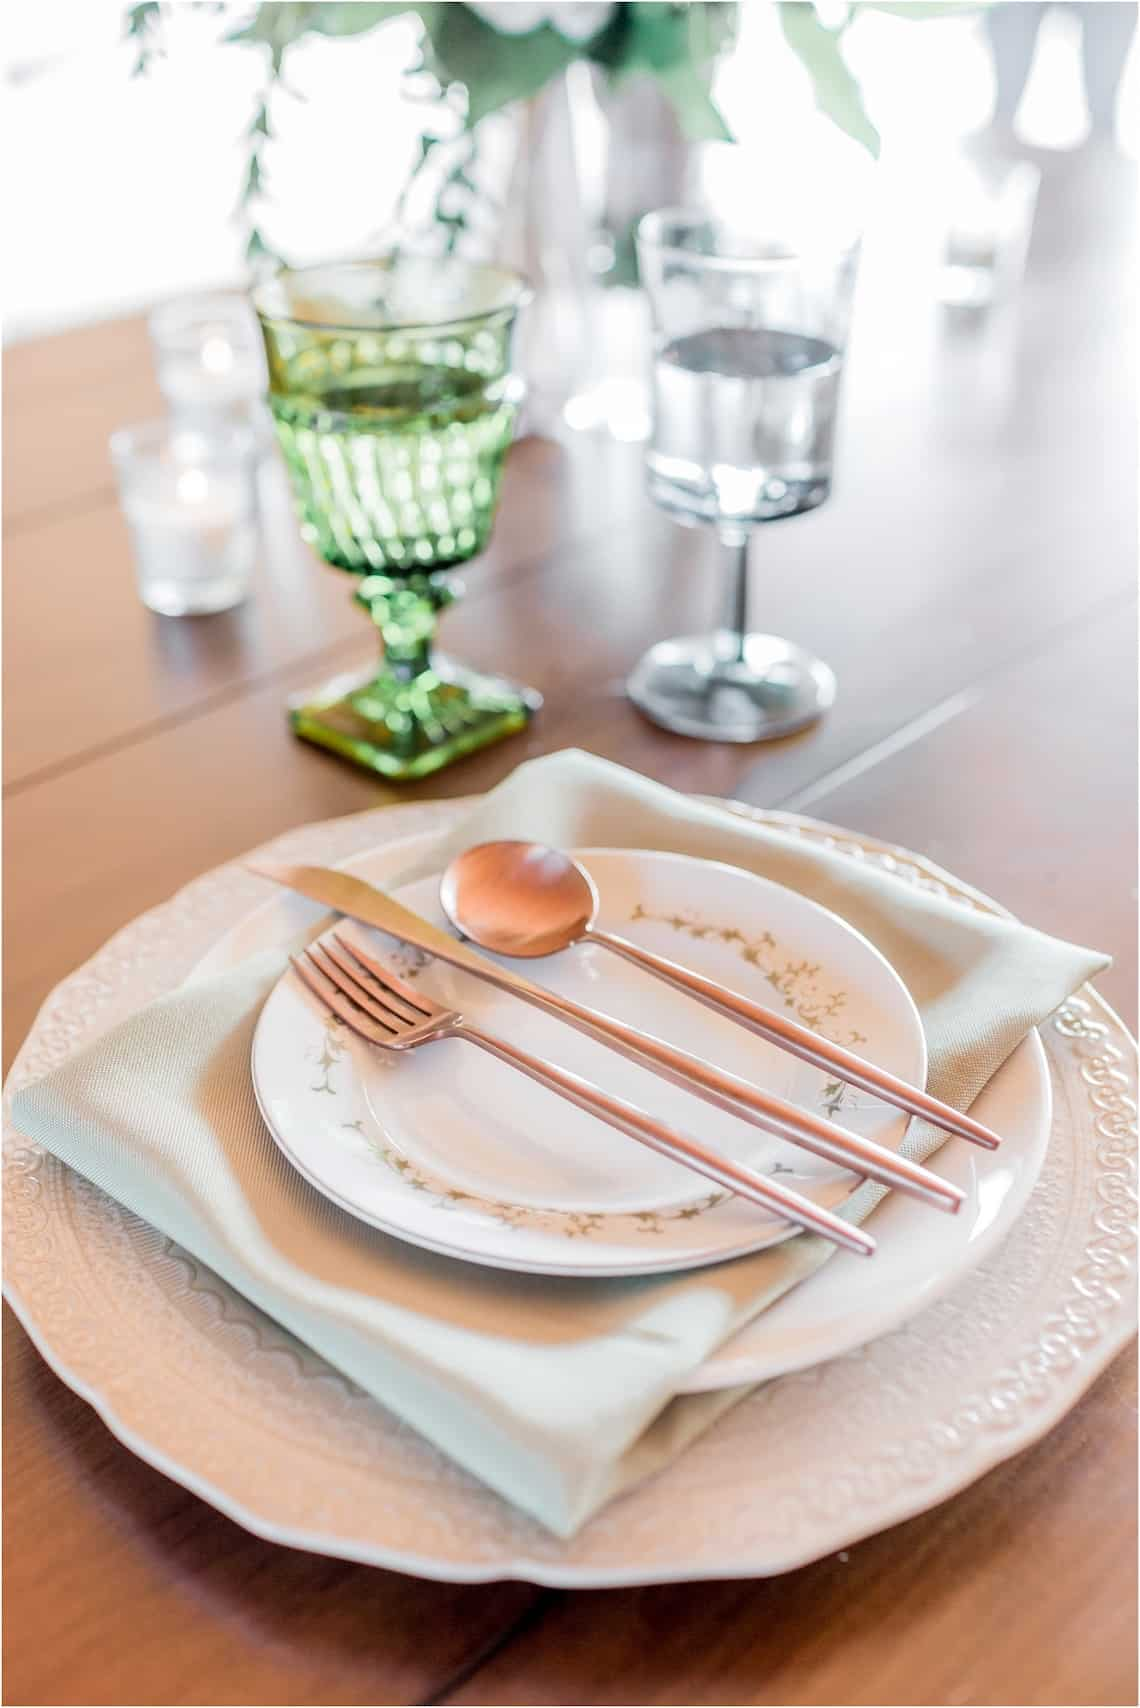 Southern Glassware and Vintage Wedding Plates